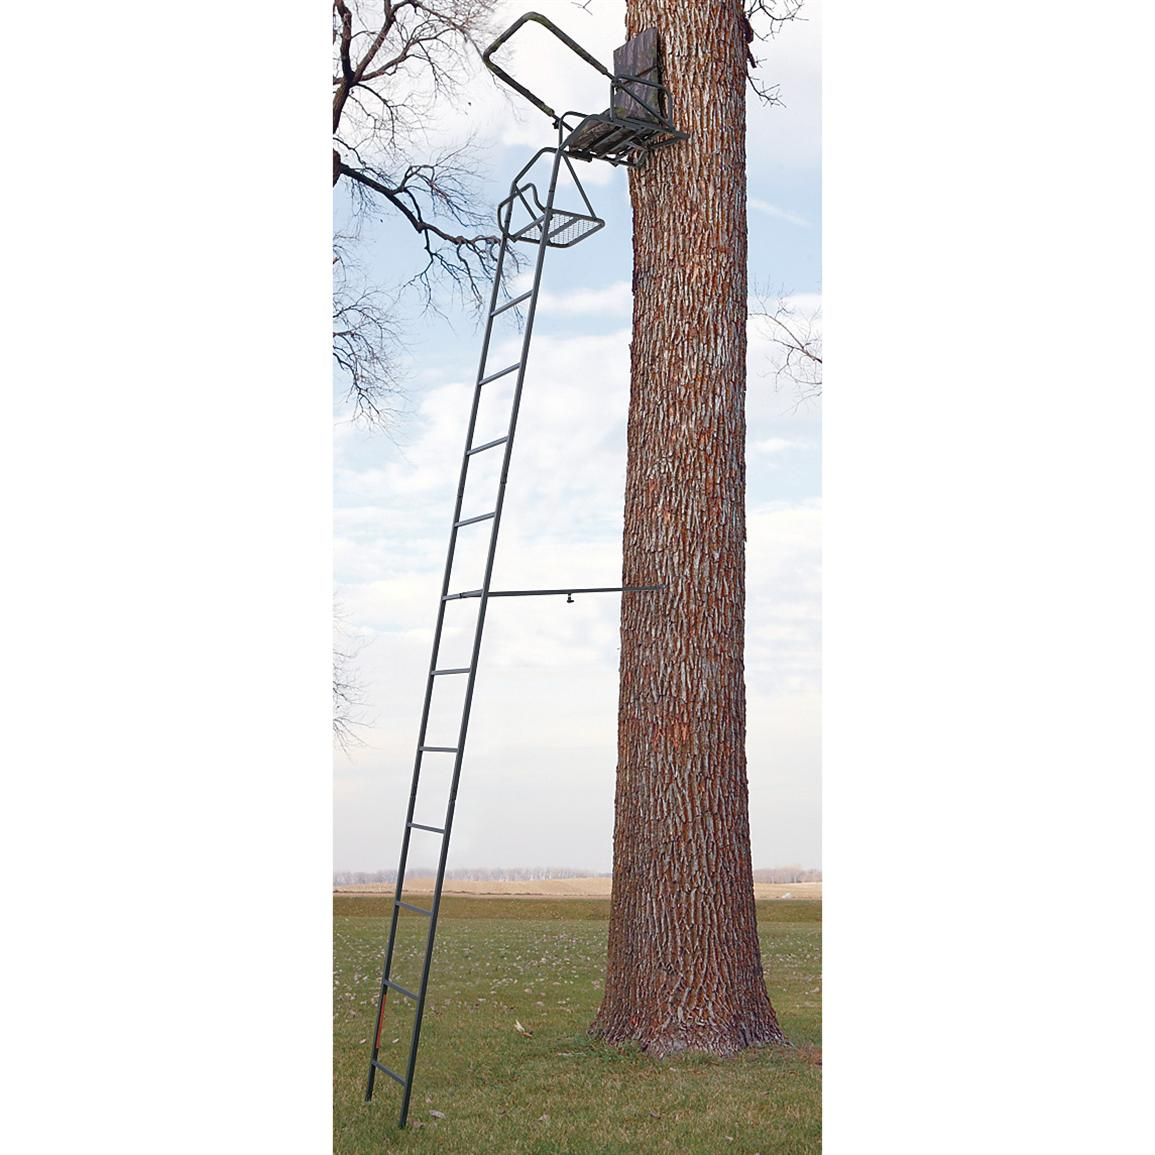 Guide Gear® 16 foot XL Ladder Tree Stand